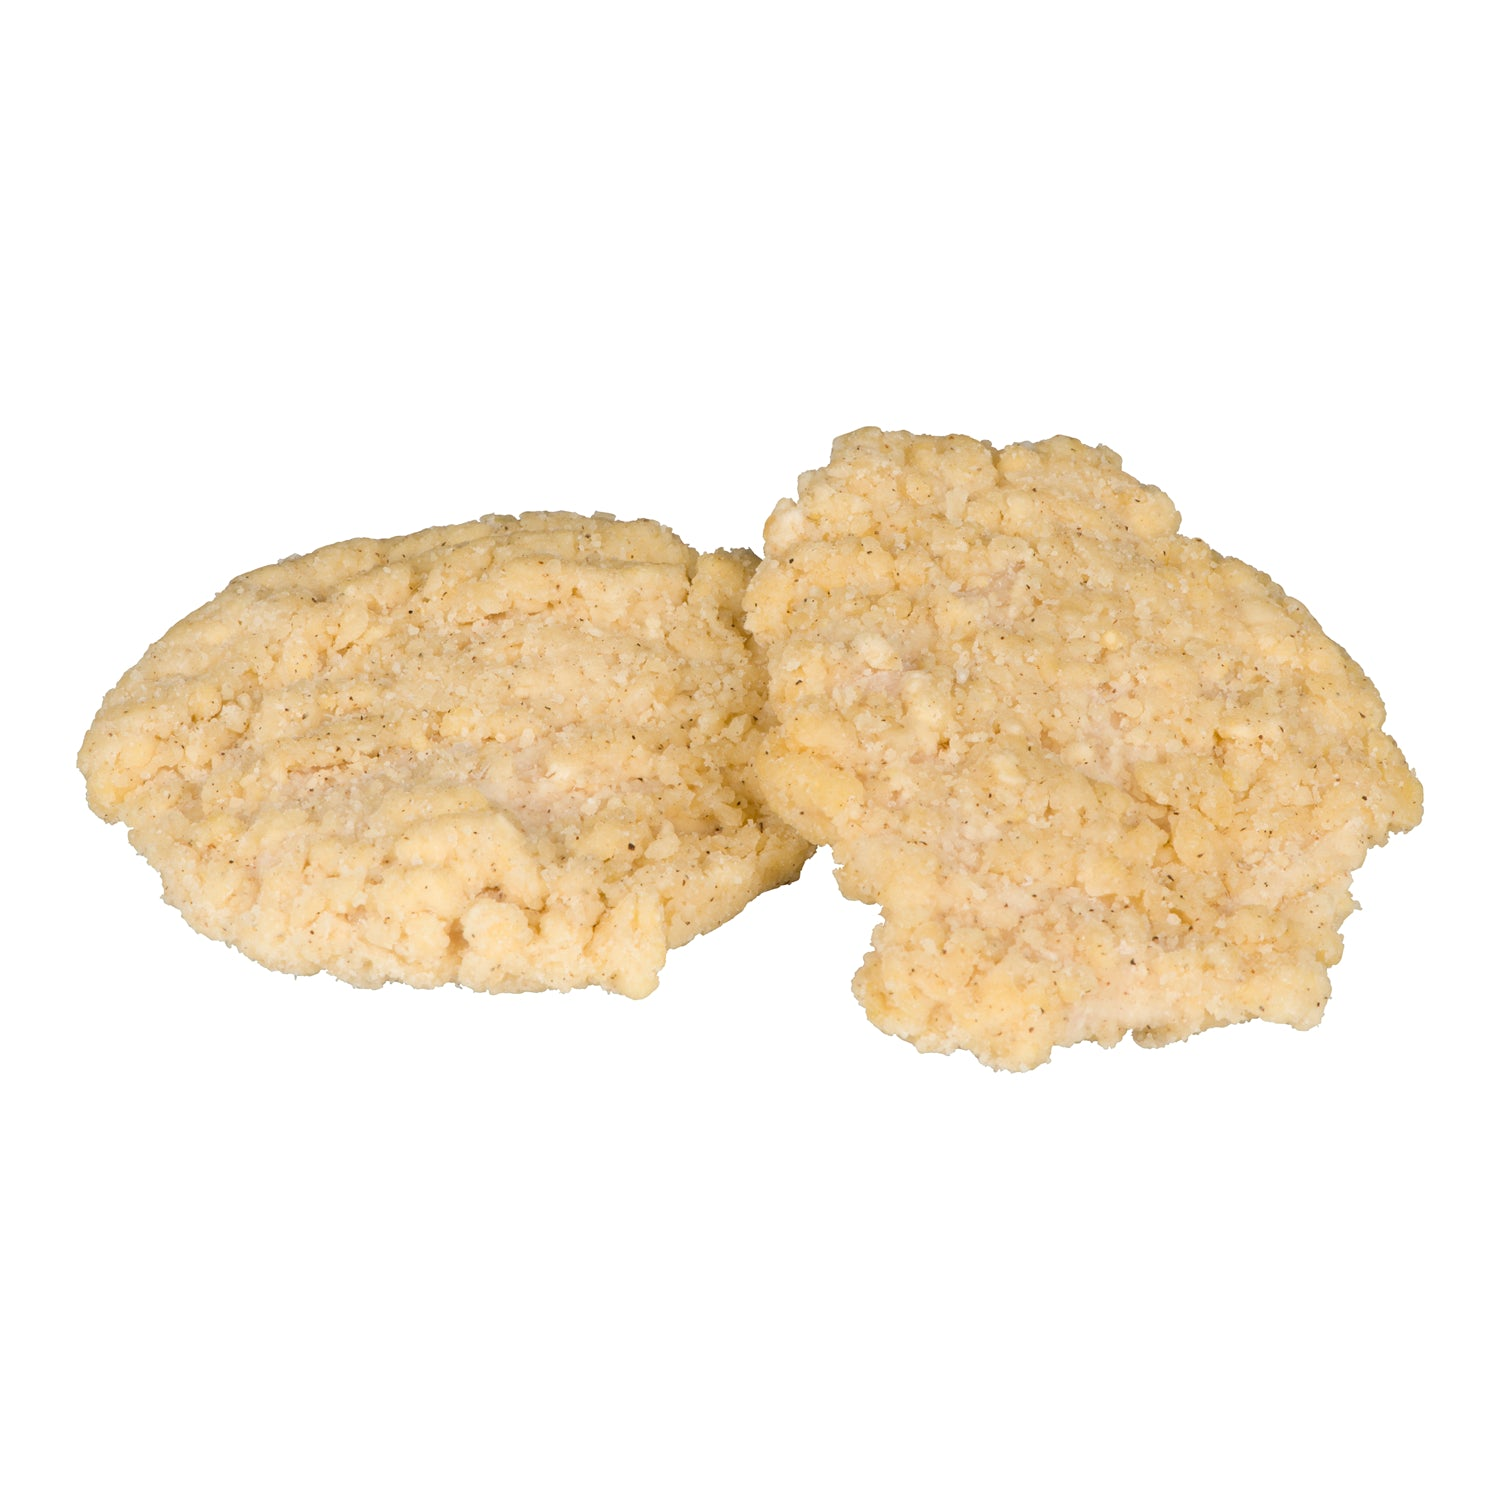 Sysco Classic Frozen Wave Breaded Chicken Breast 4.5 oz - 2 kg - 2 Pack [$19.00/kg]